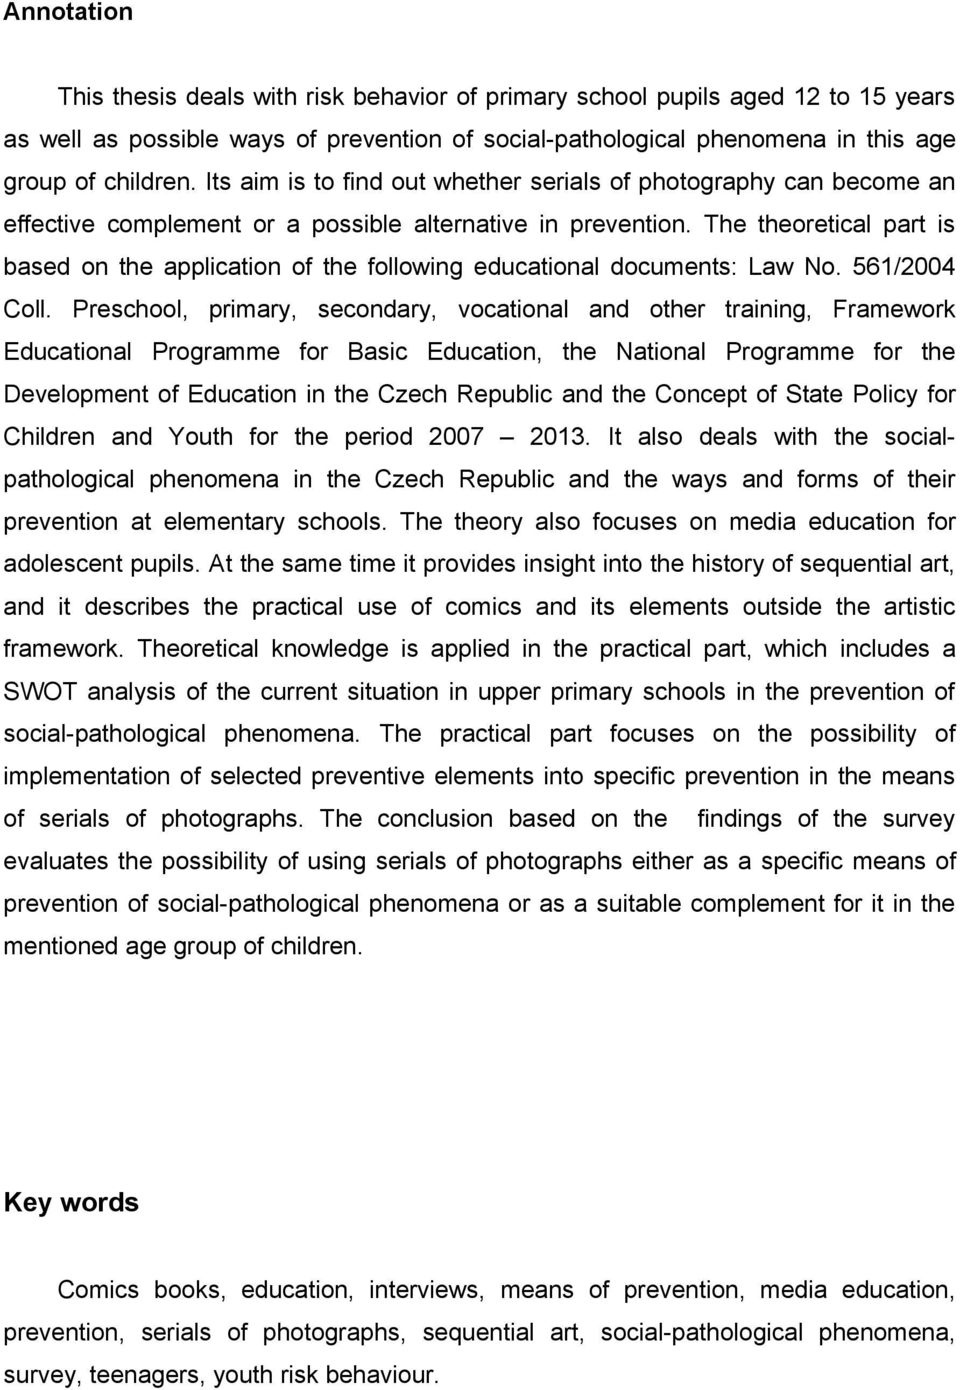 The theoretical part is based on the application of the following educational documents: Law No. 561/2004 Coll.